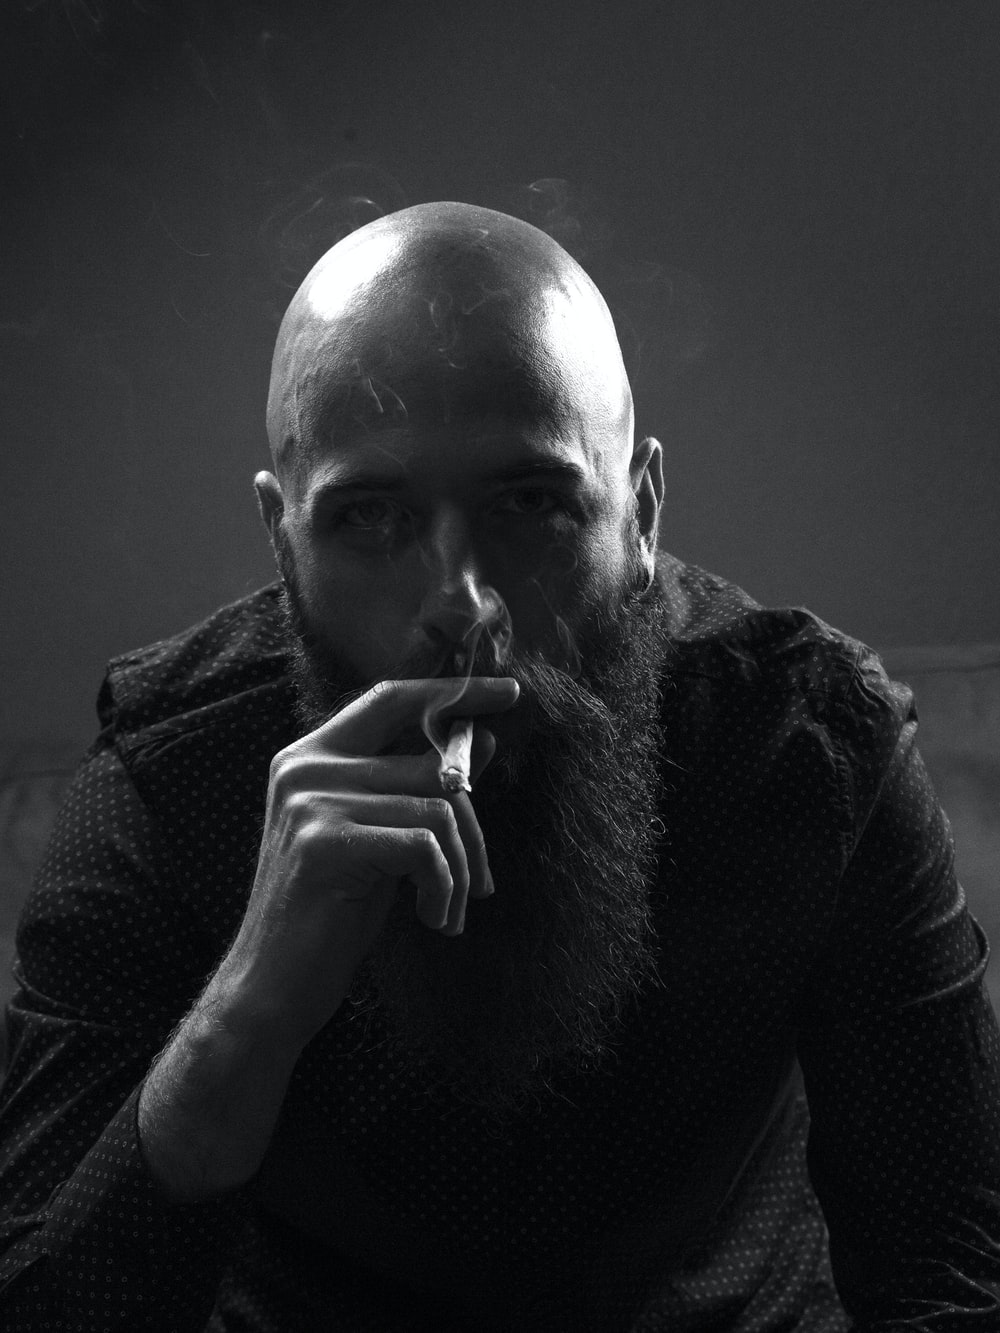 grayscale photo of man smoking cigarette